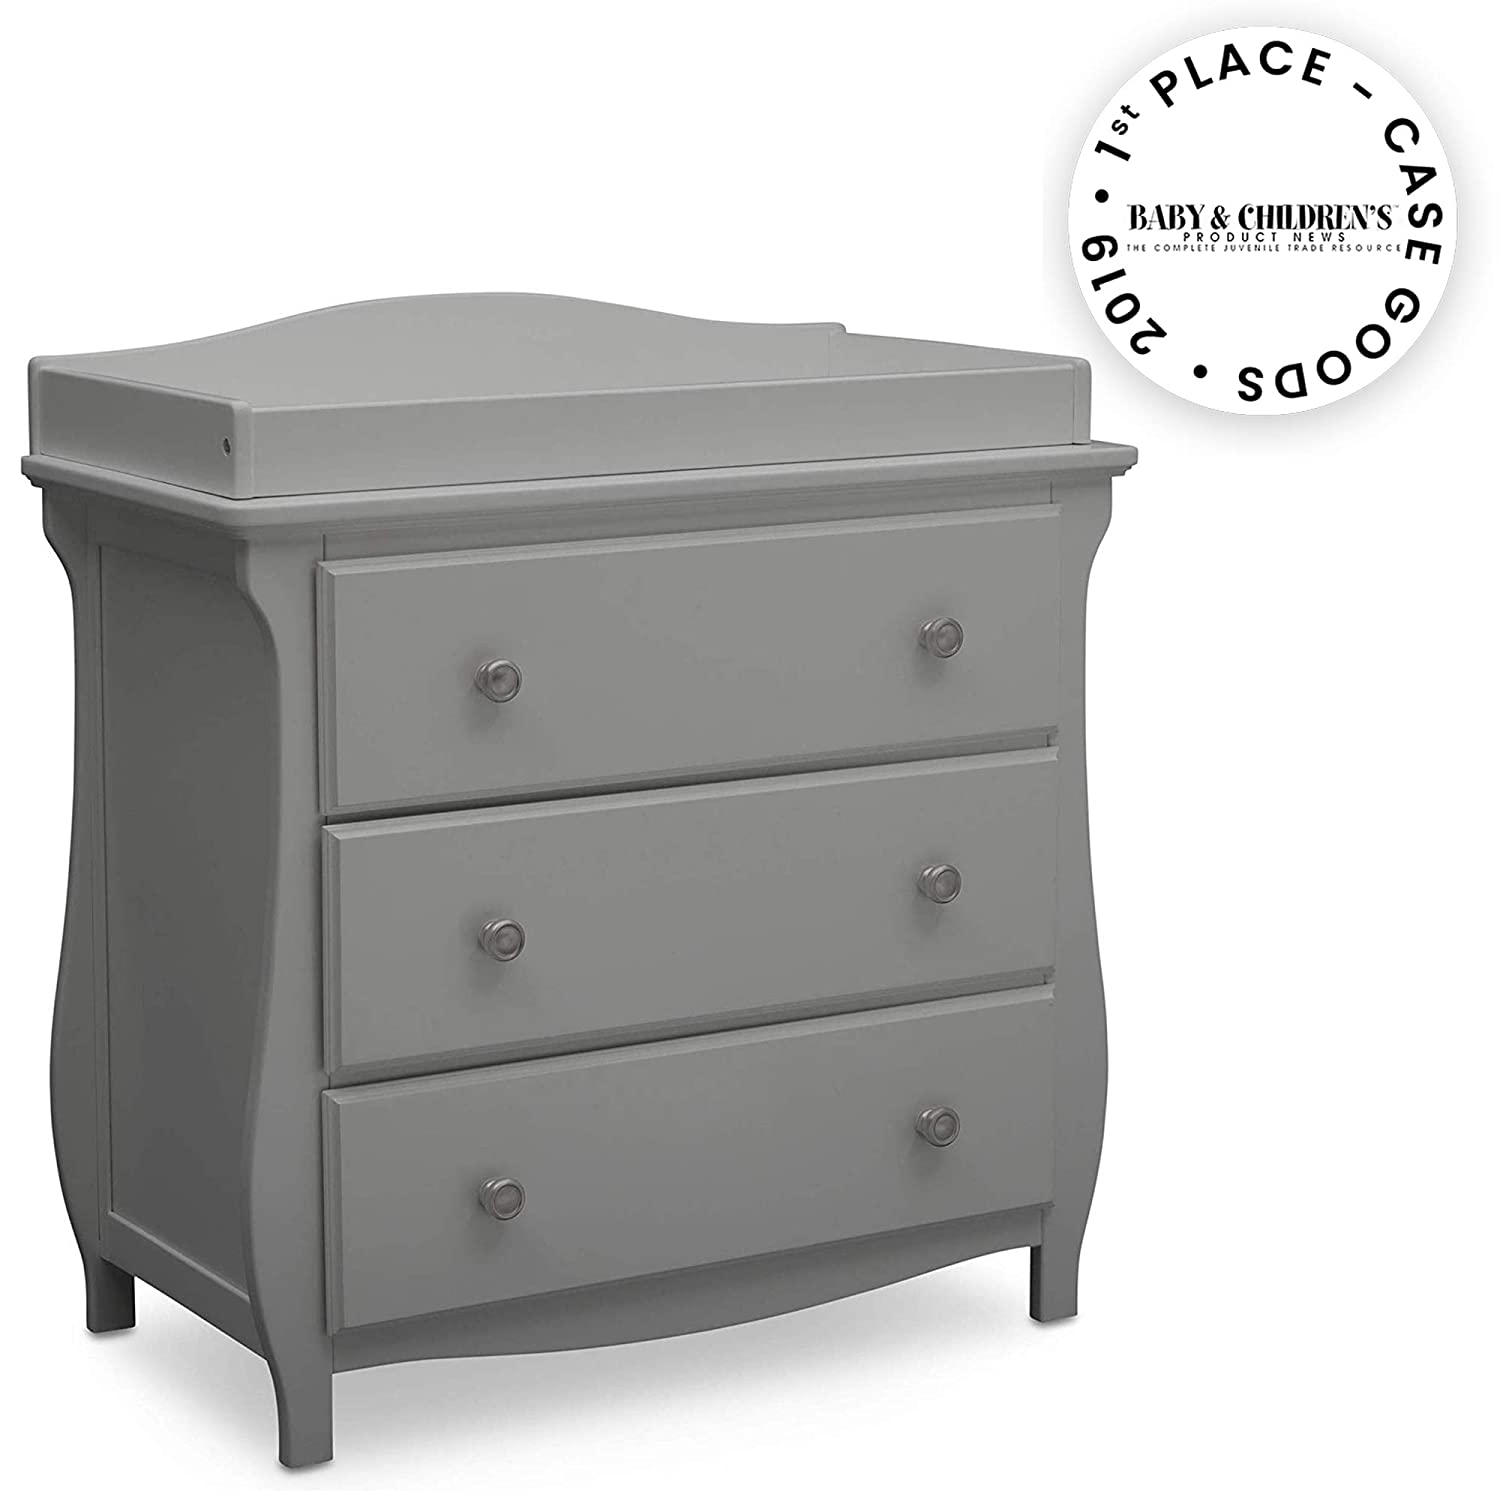 White Delta Children Lancaster 3 Drawer Dresser with Changing Top Bianca White and Contoured Changing Pad